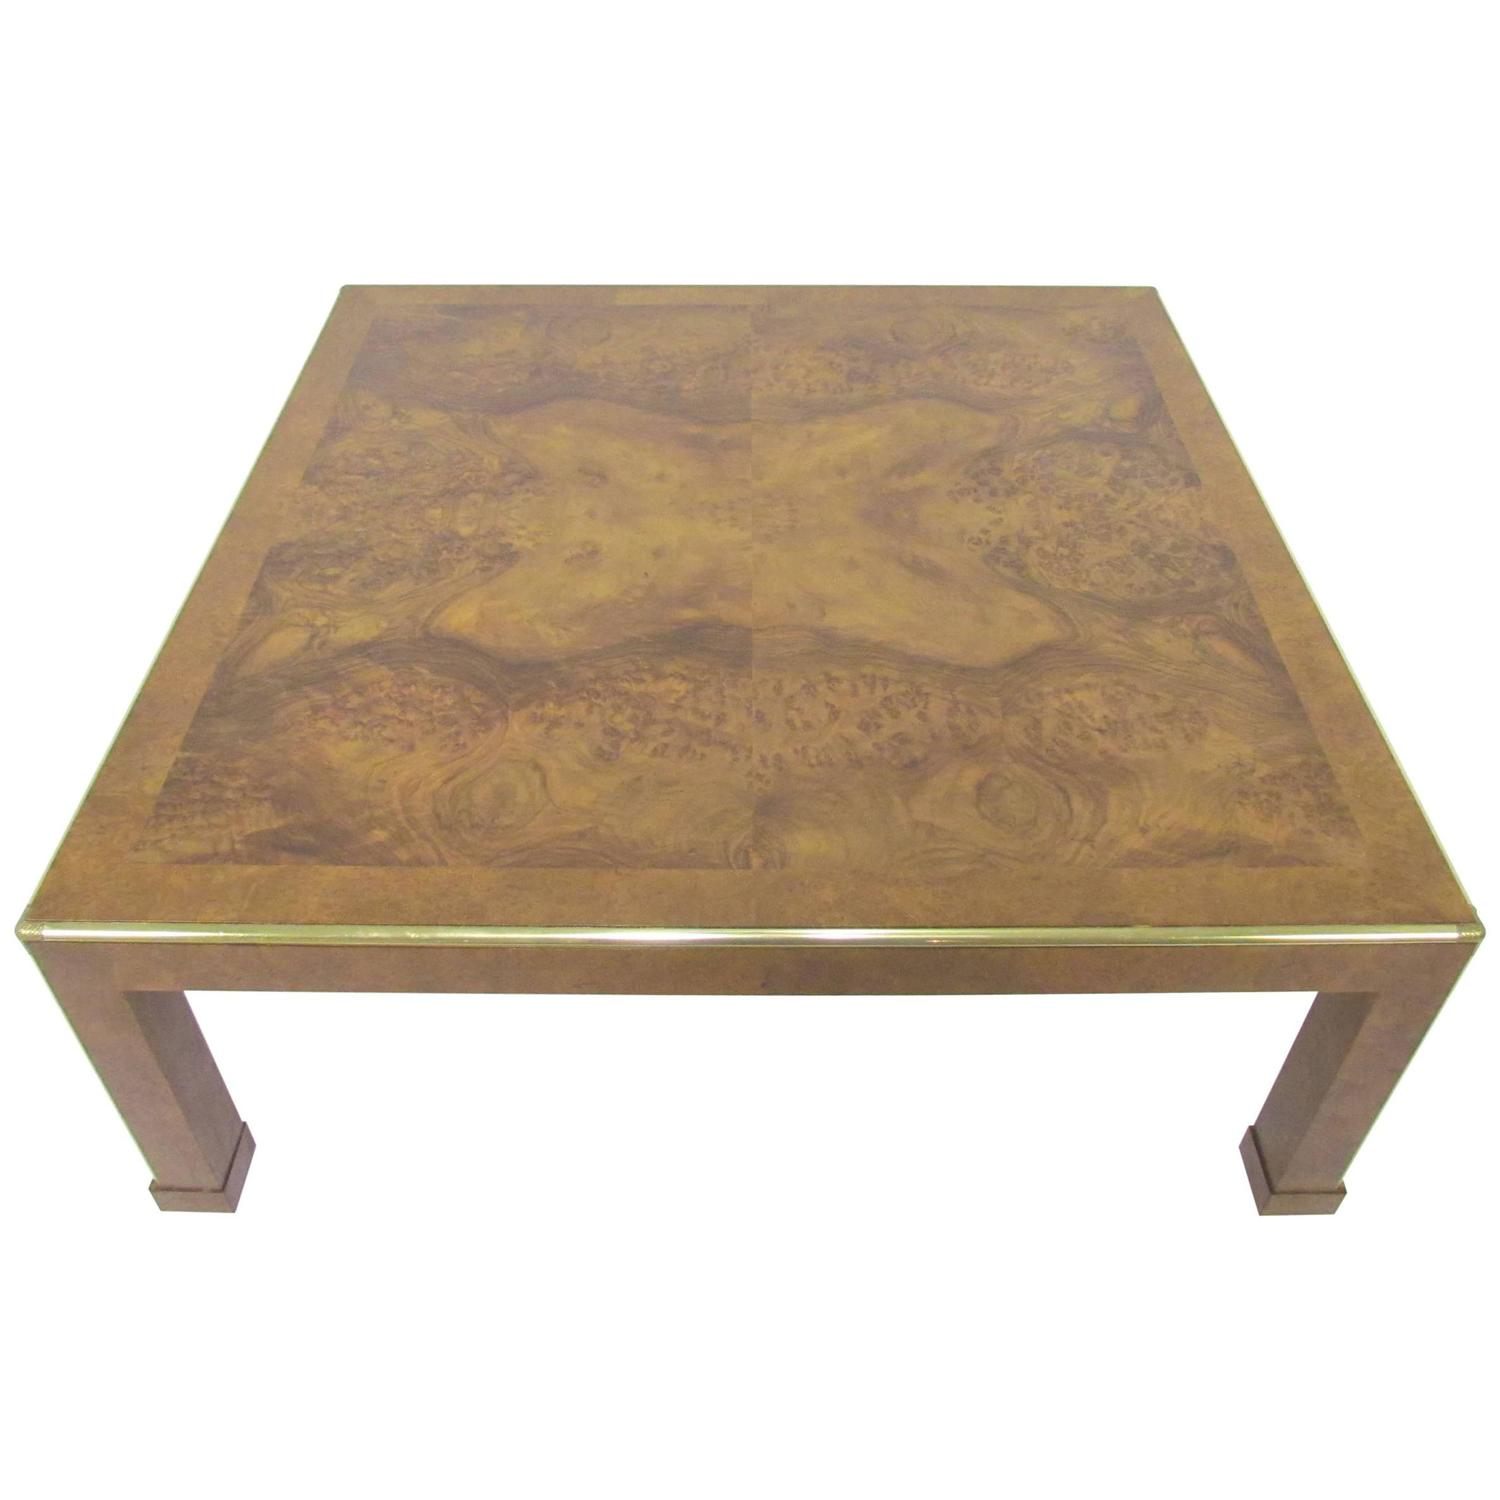 Baker Furniture Square Burl Wood Coffee Table circa 1970s